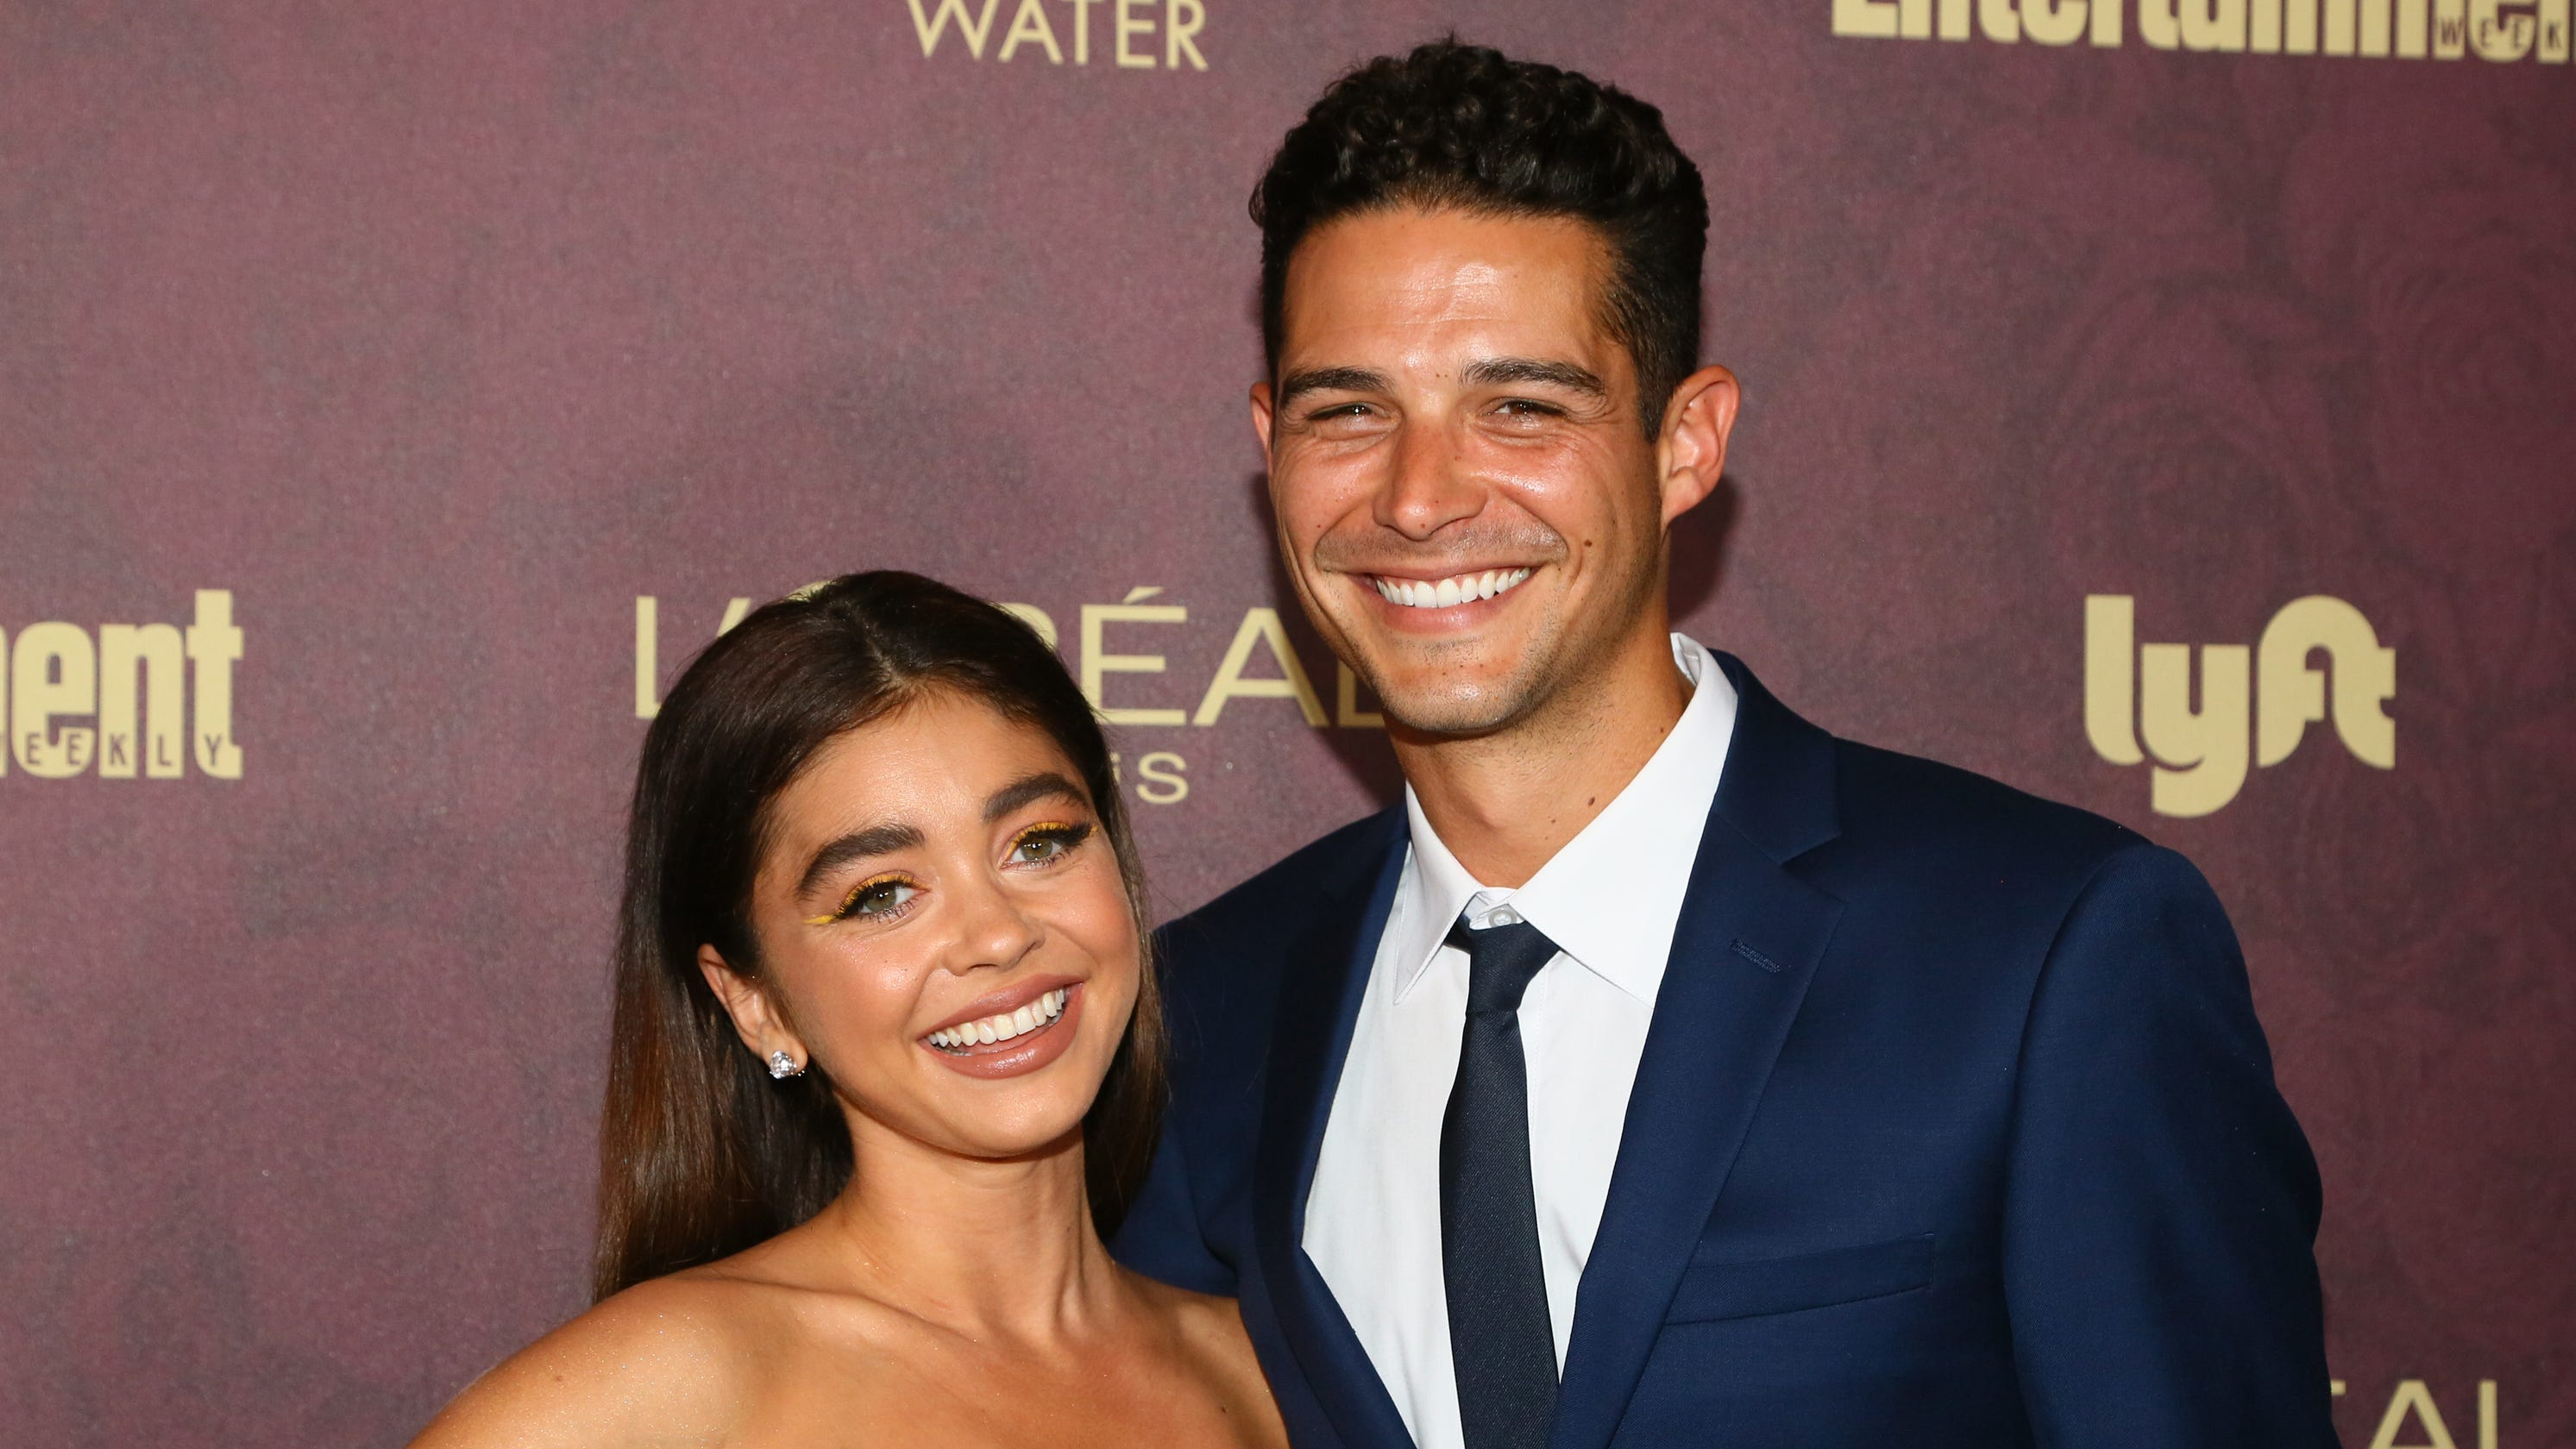 Sarah Hyland is engaged to 'Bachelorette' alum Wells Adams after meeting on social media